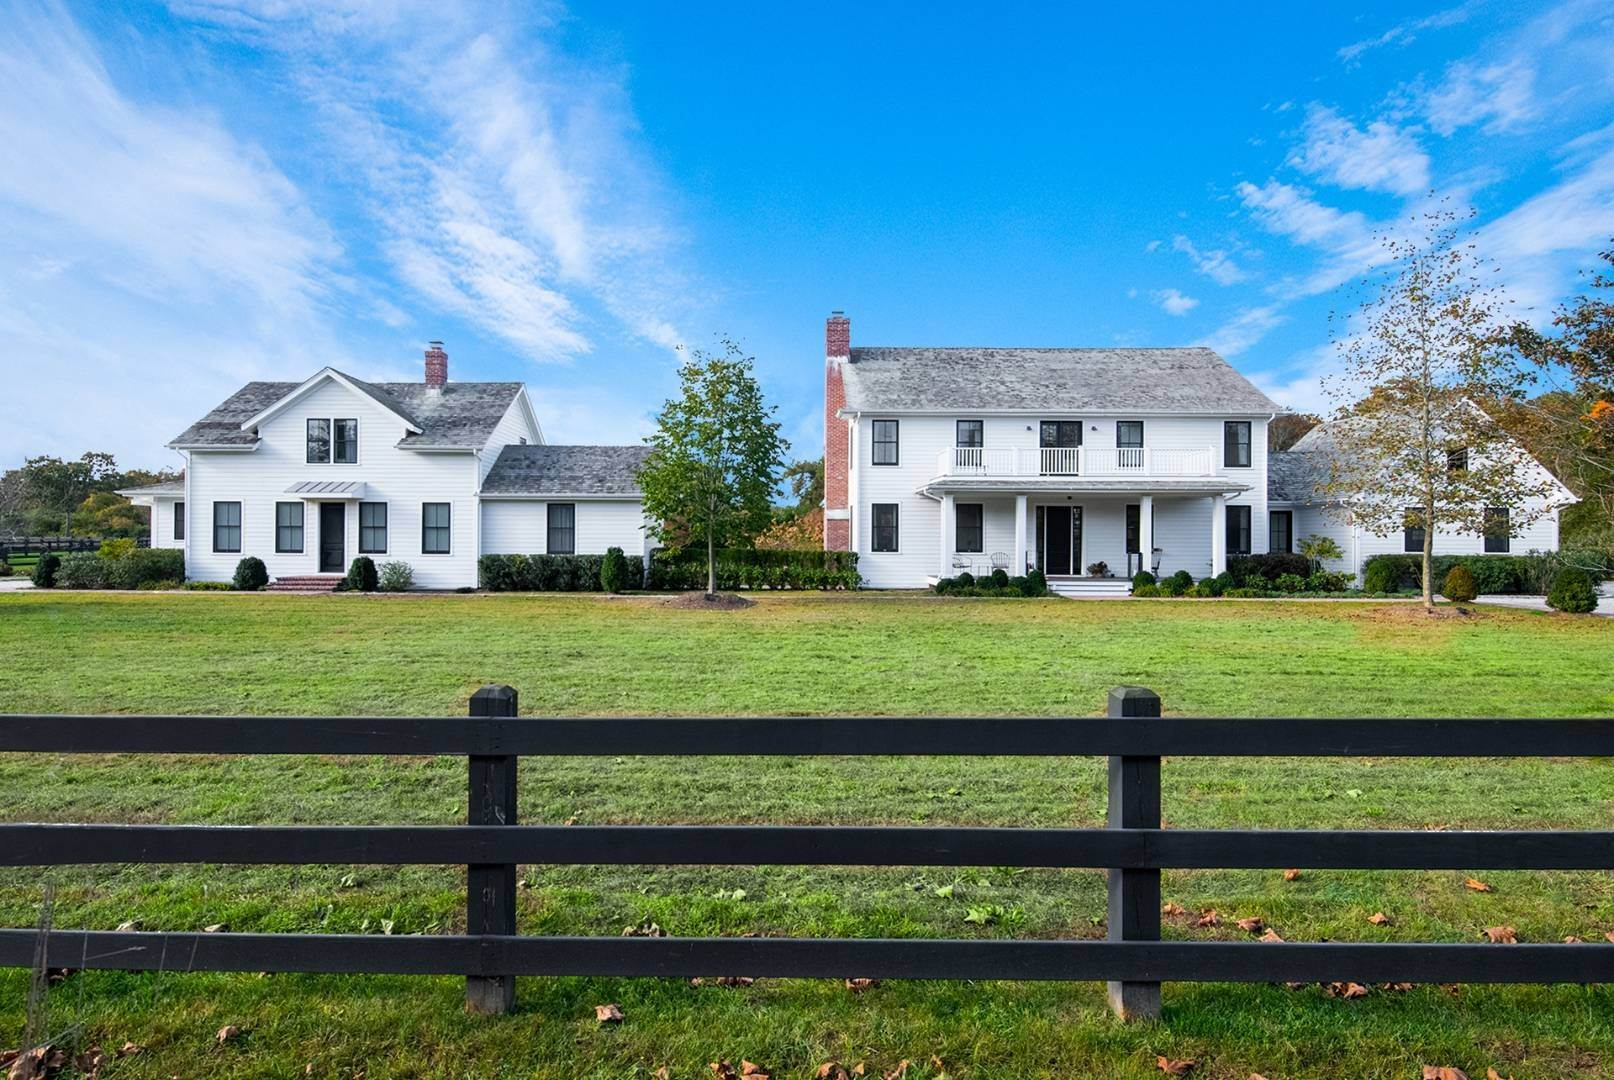 Single Family Home at Sagaponack Horse Farm Views 172 Narrow Lane East, Sagaponack Village, NY 11962